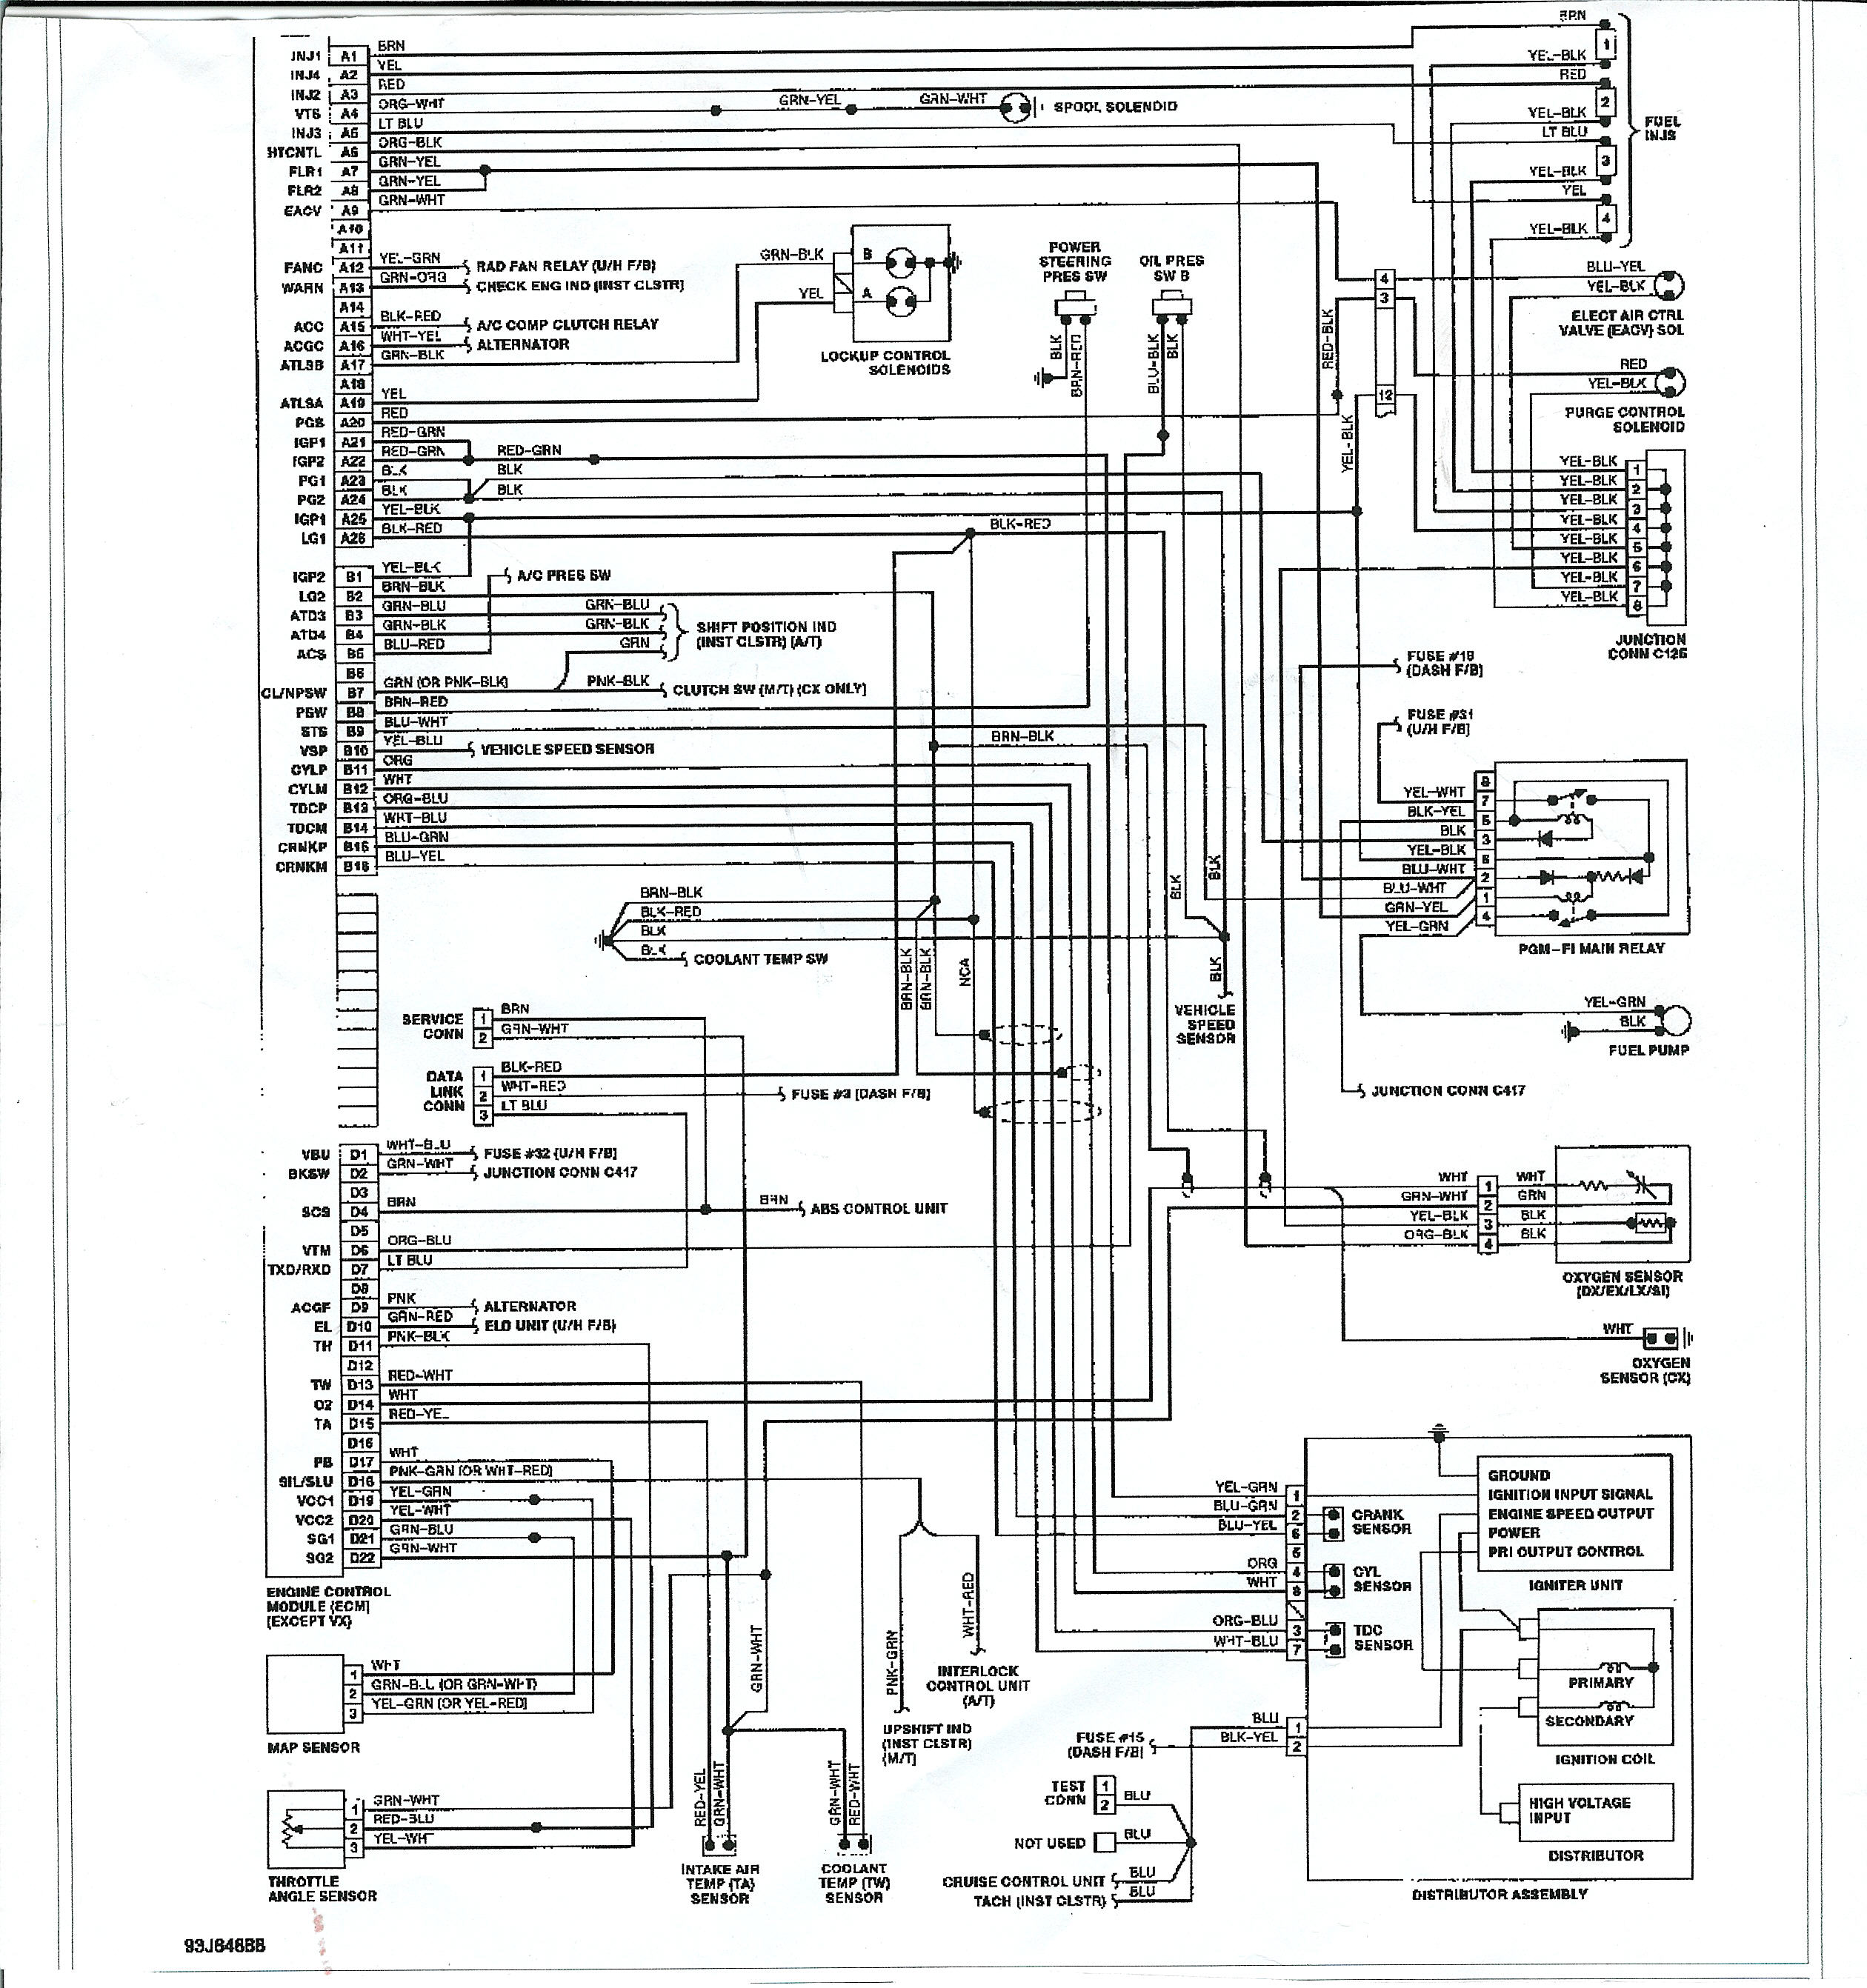 integra wiring diagram human muscular system labeled tcm schematic for auto swap honda tech